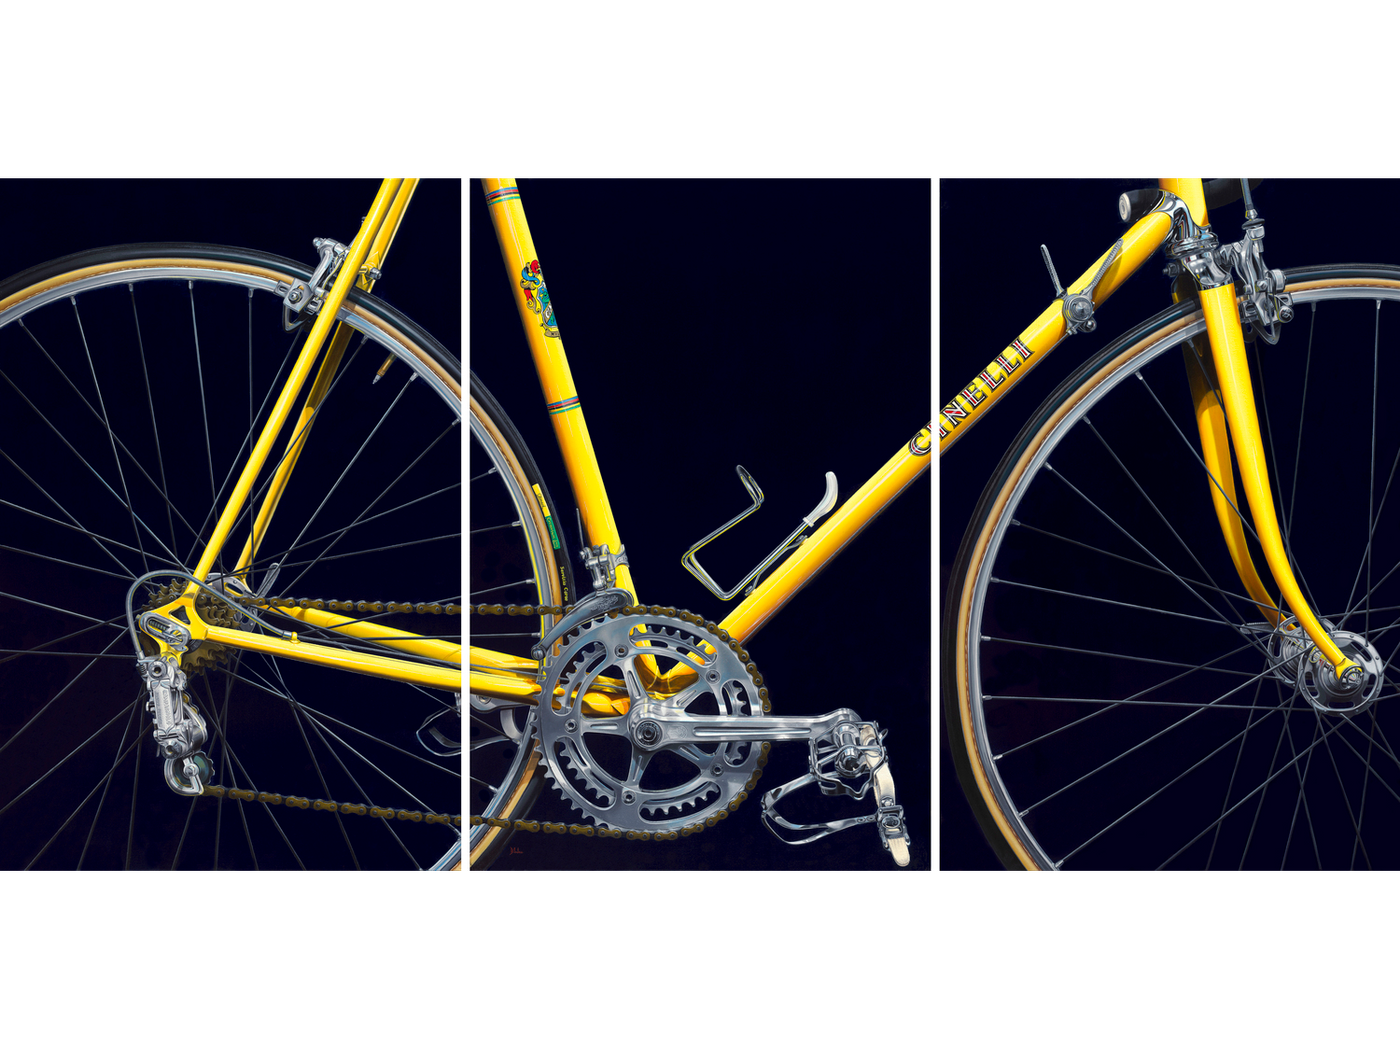 NICKALAS BLADES: Greg LeMond's Jaune Cinelli Supercorsa Prints